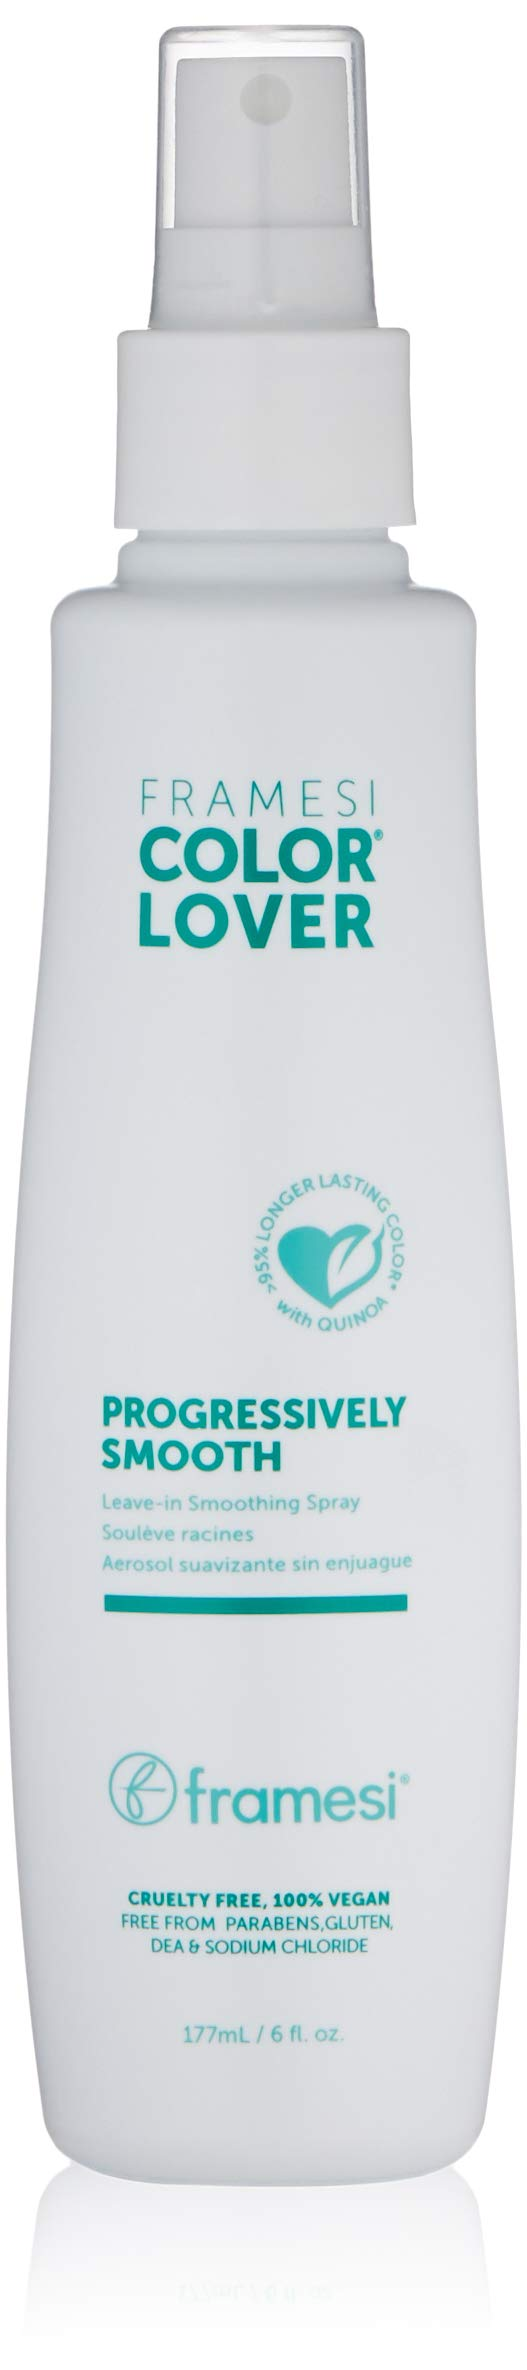 Framesi Color Lover Progressively Smooth - 6 Ounce, Color Safe Leave In Smoothing Spray, Anti-Frizz Spray, Vegan, Gluten Free, Cruelty Free by framesi